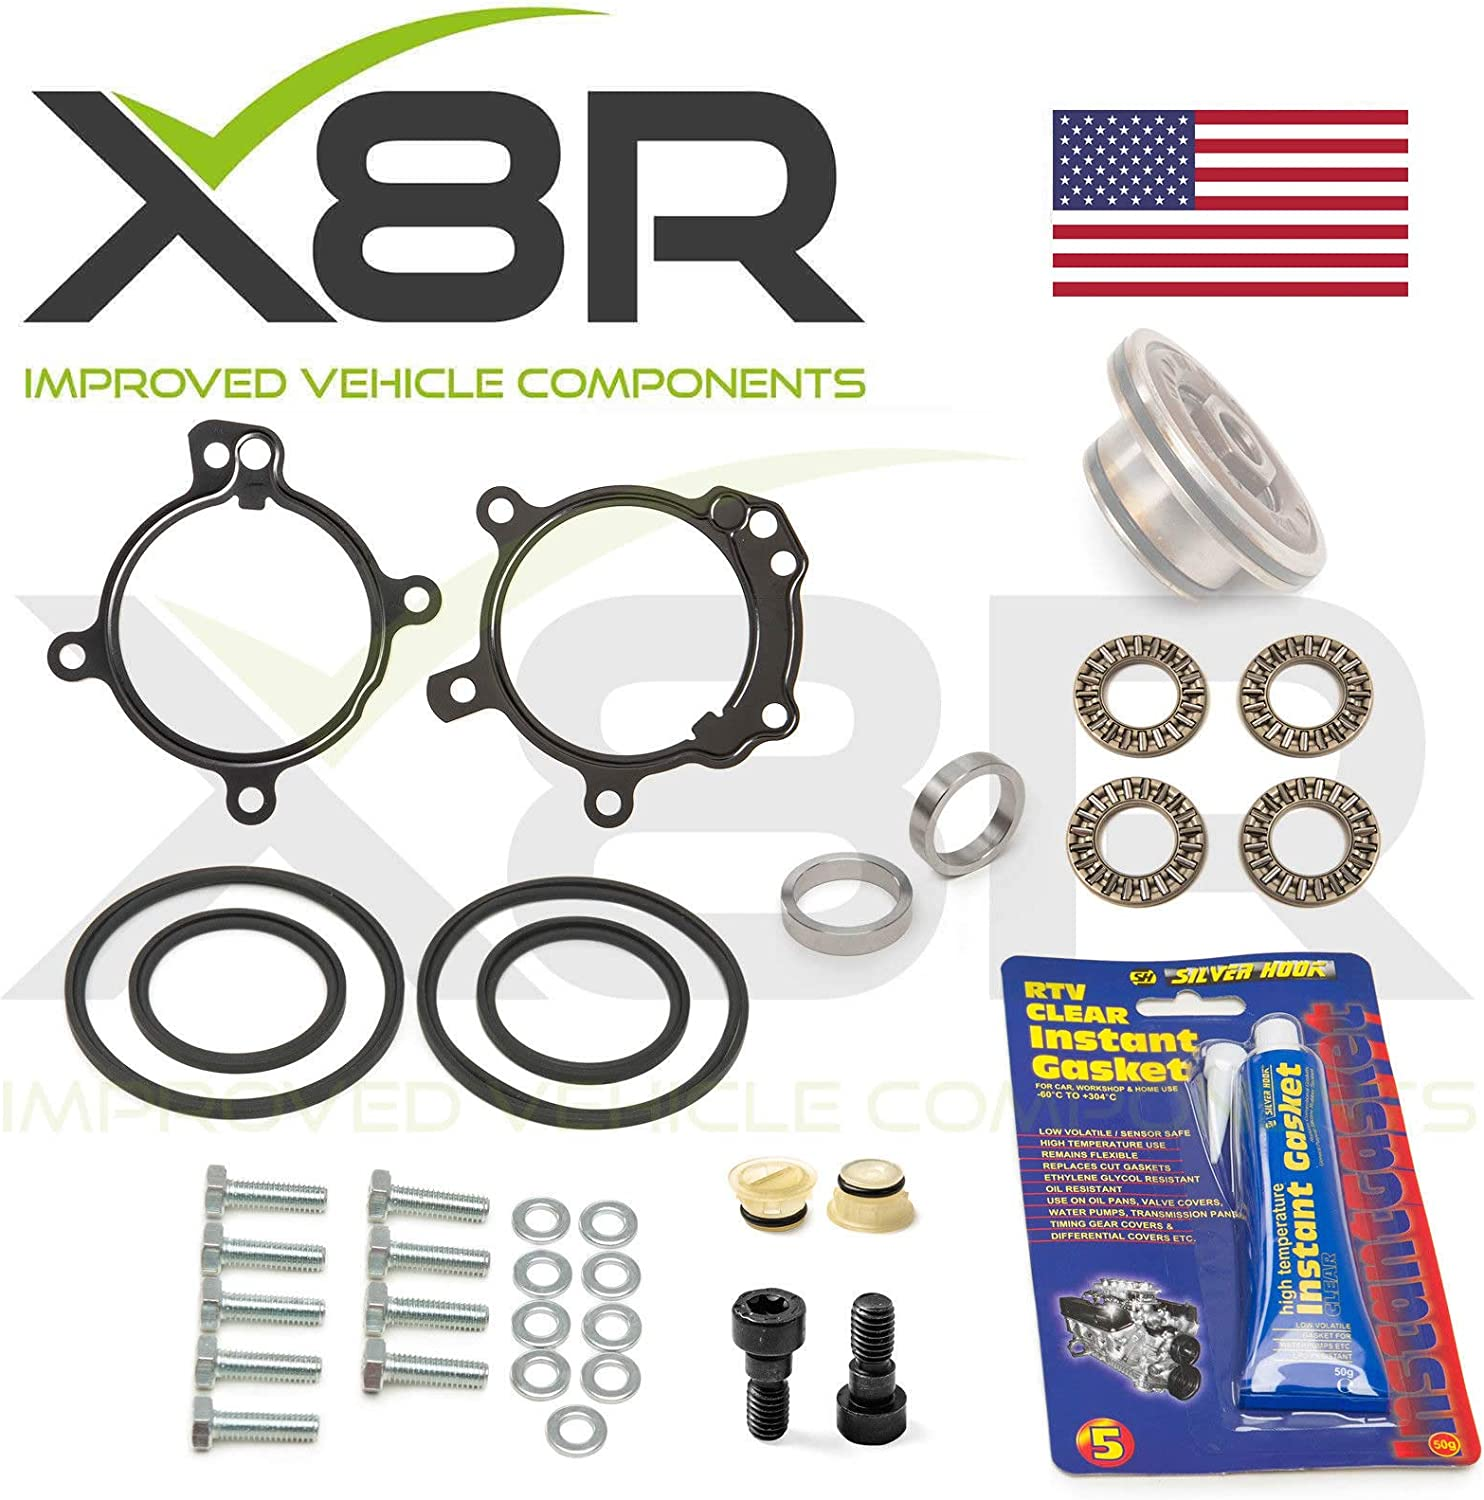 X8R M52TU M54 Selling rankings M56 6-CYLINDER ENGINE Year-end gift RATTL AND PISTON SEALS VANOS